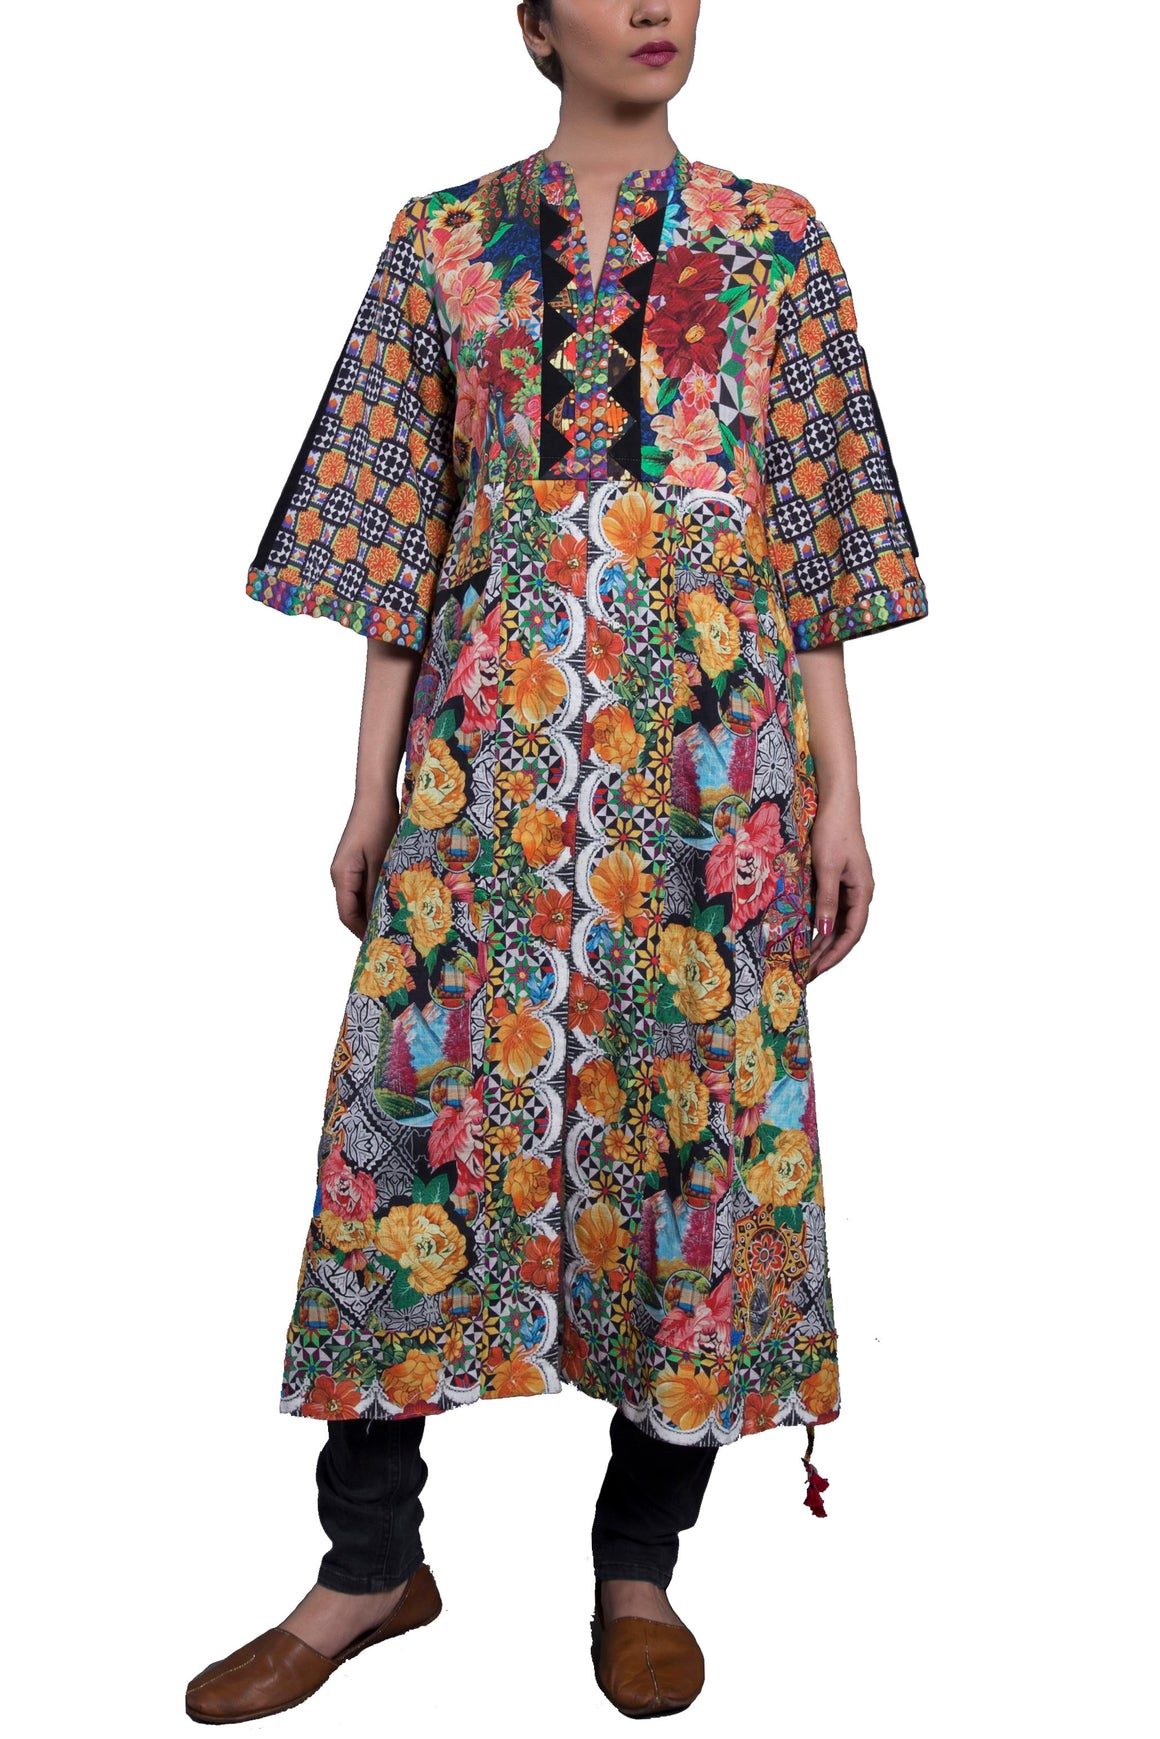 Generation - Multi Color Eclectic Folk Draw-String Tunic